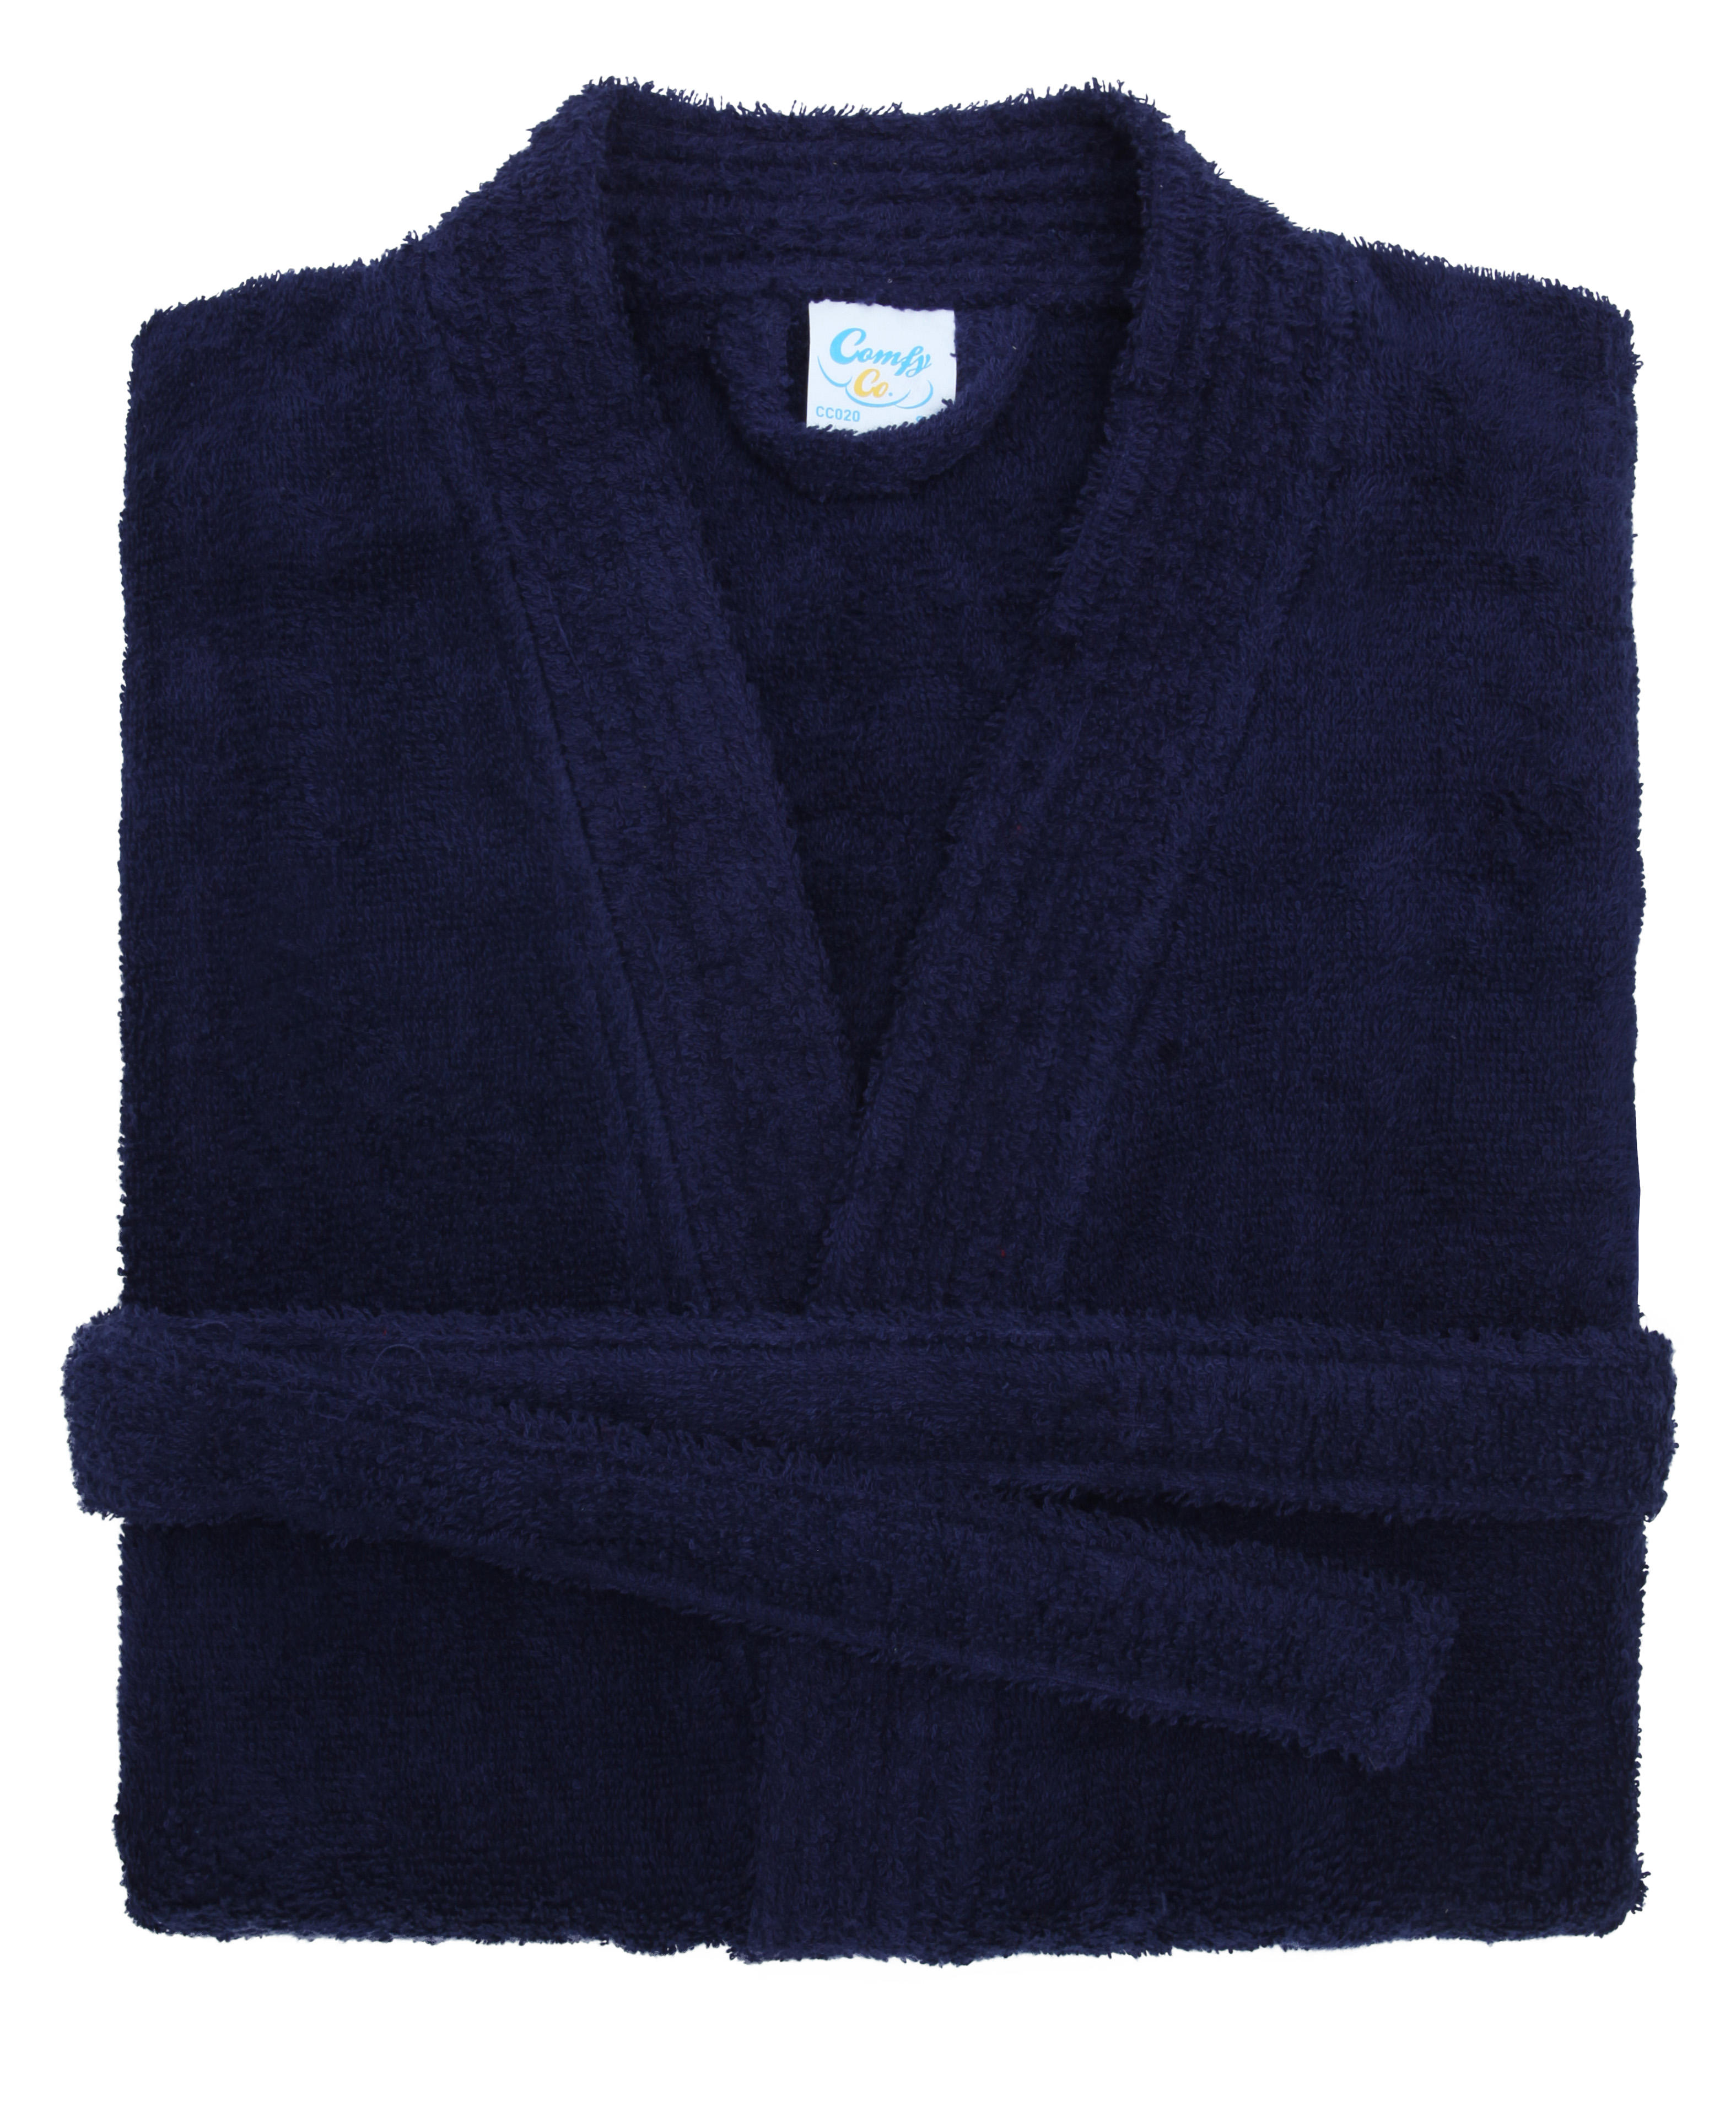 navy cotton towelling bath robe